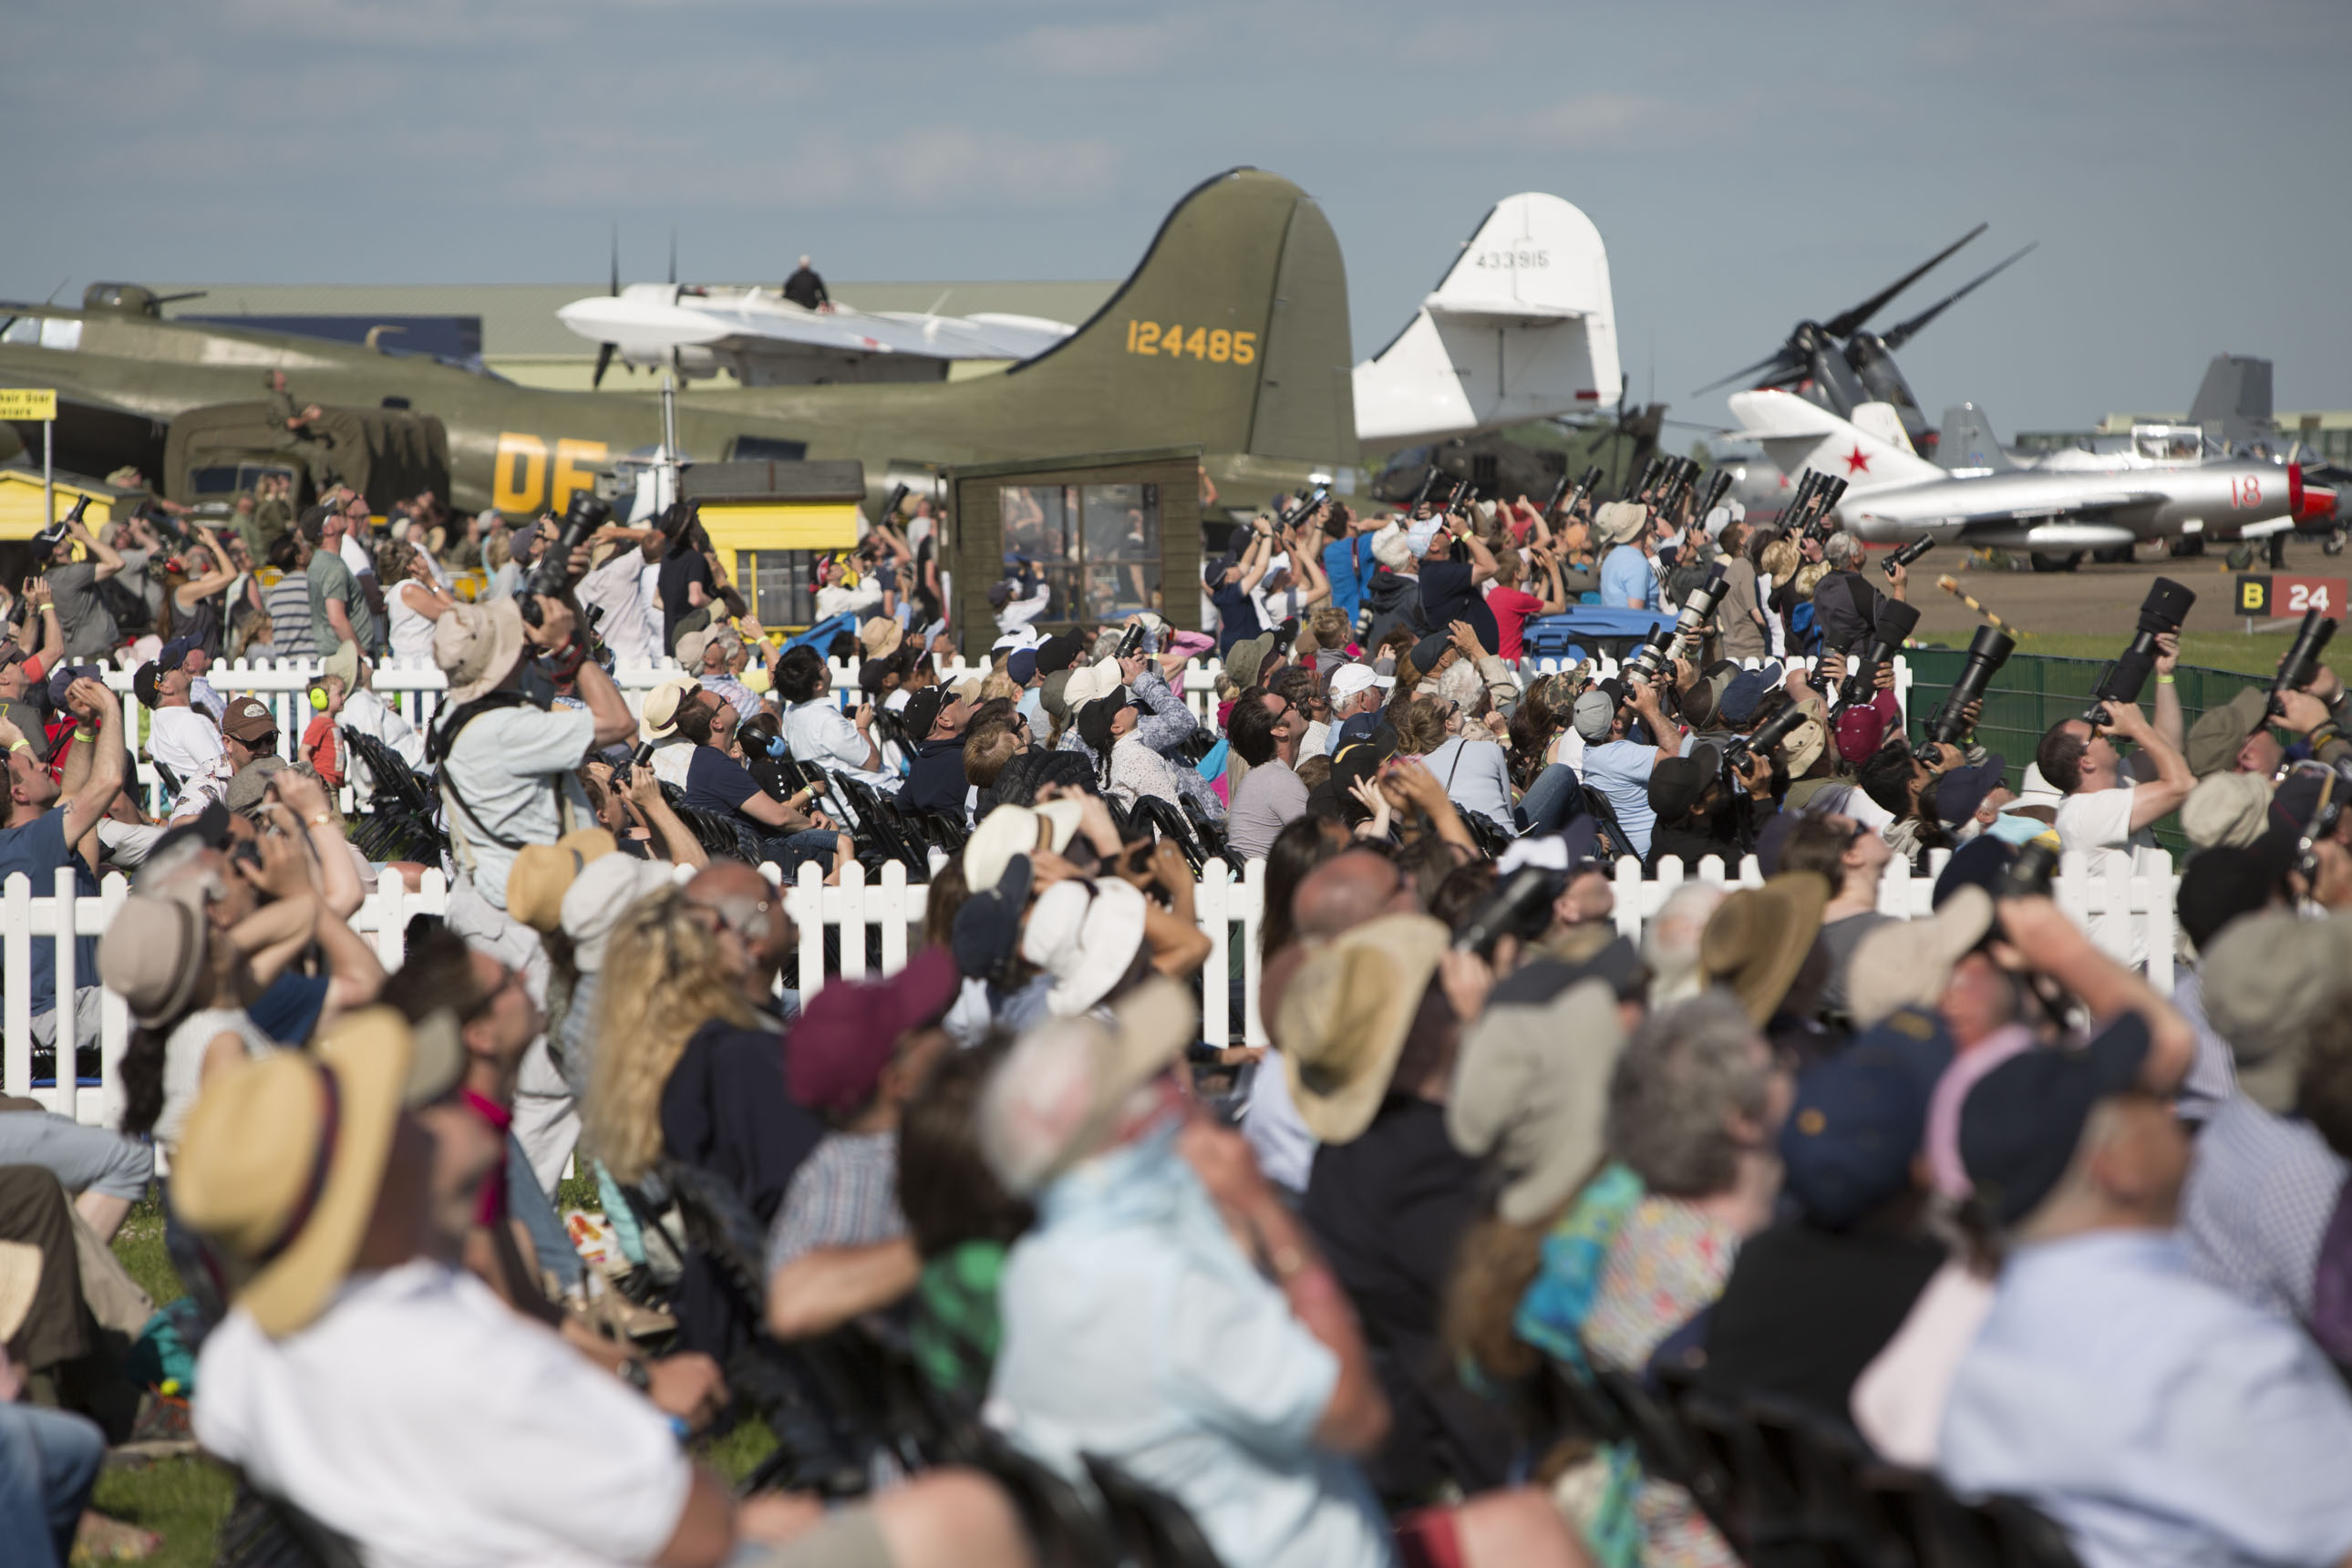 Duxford Air Show Crowd